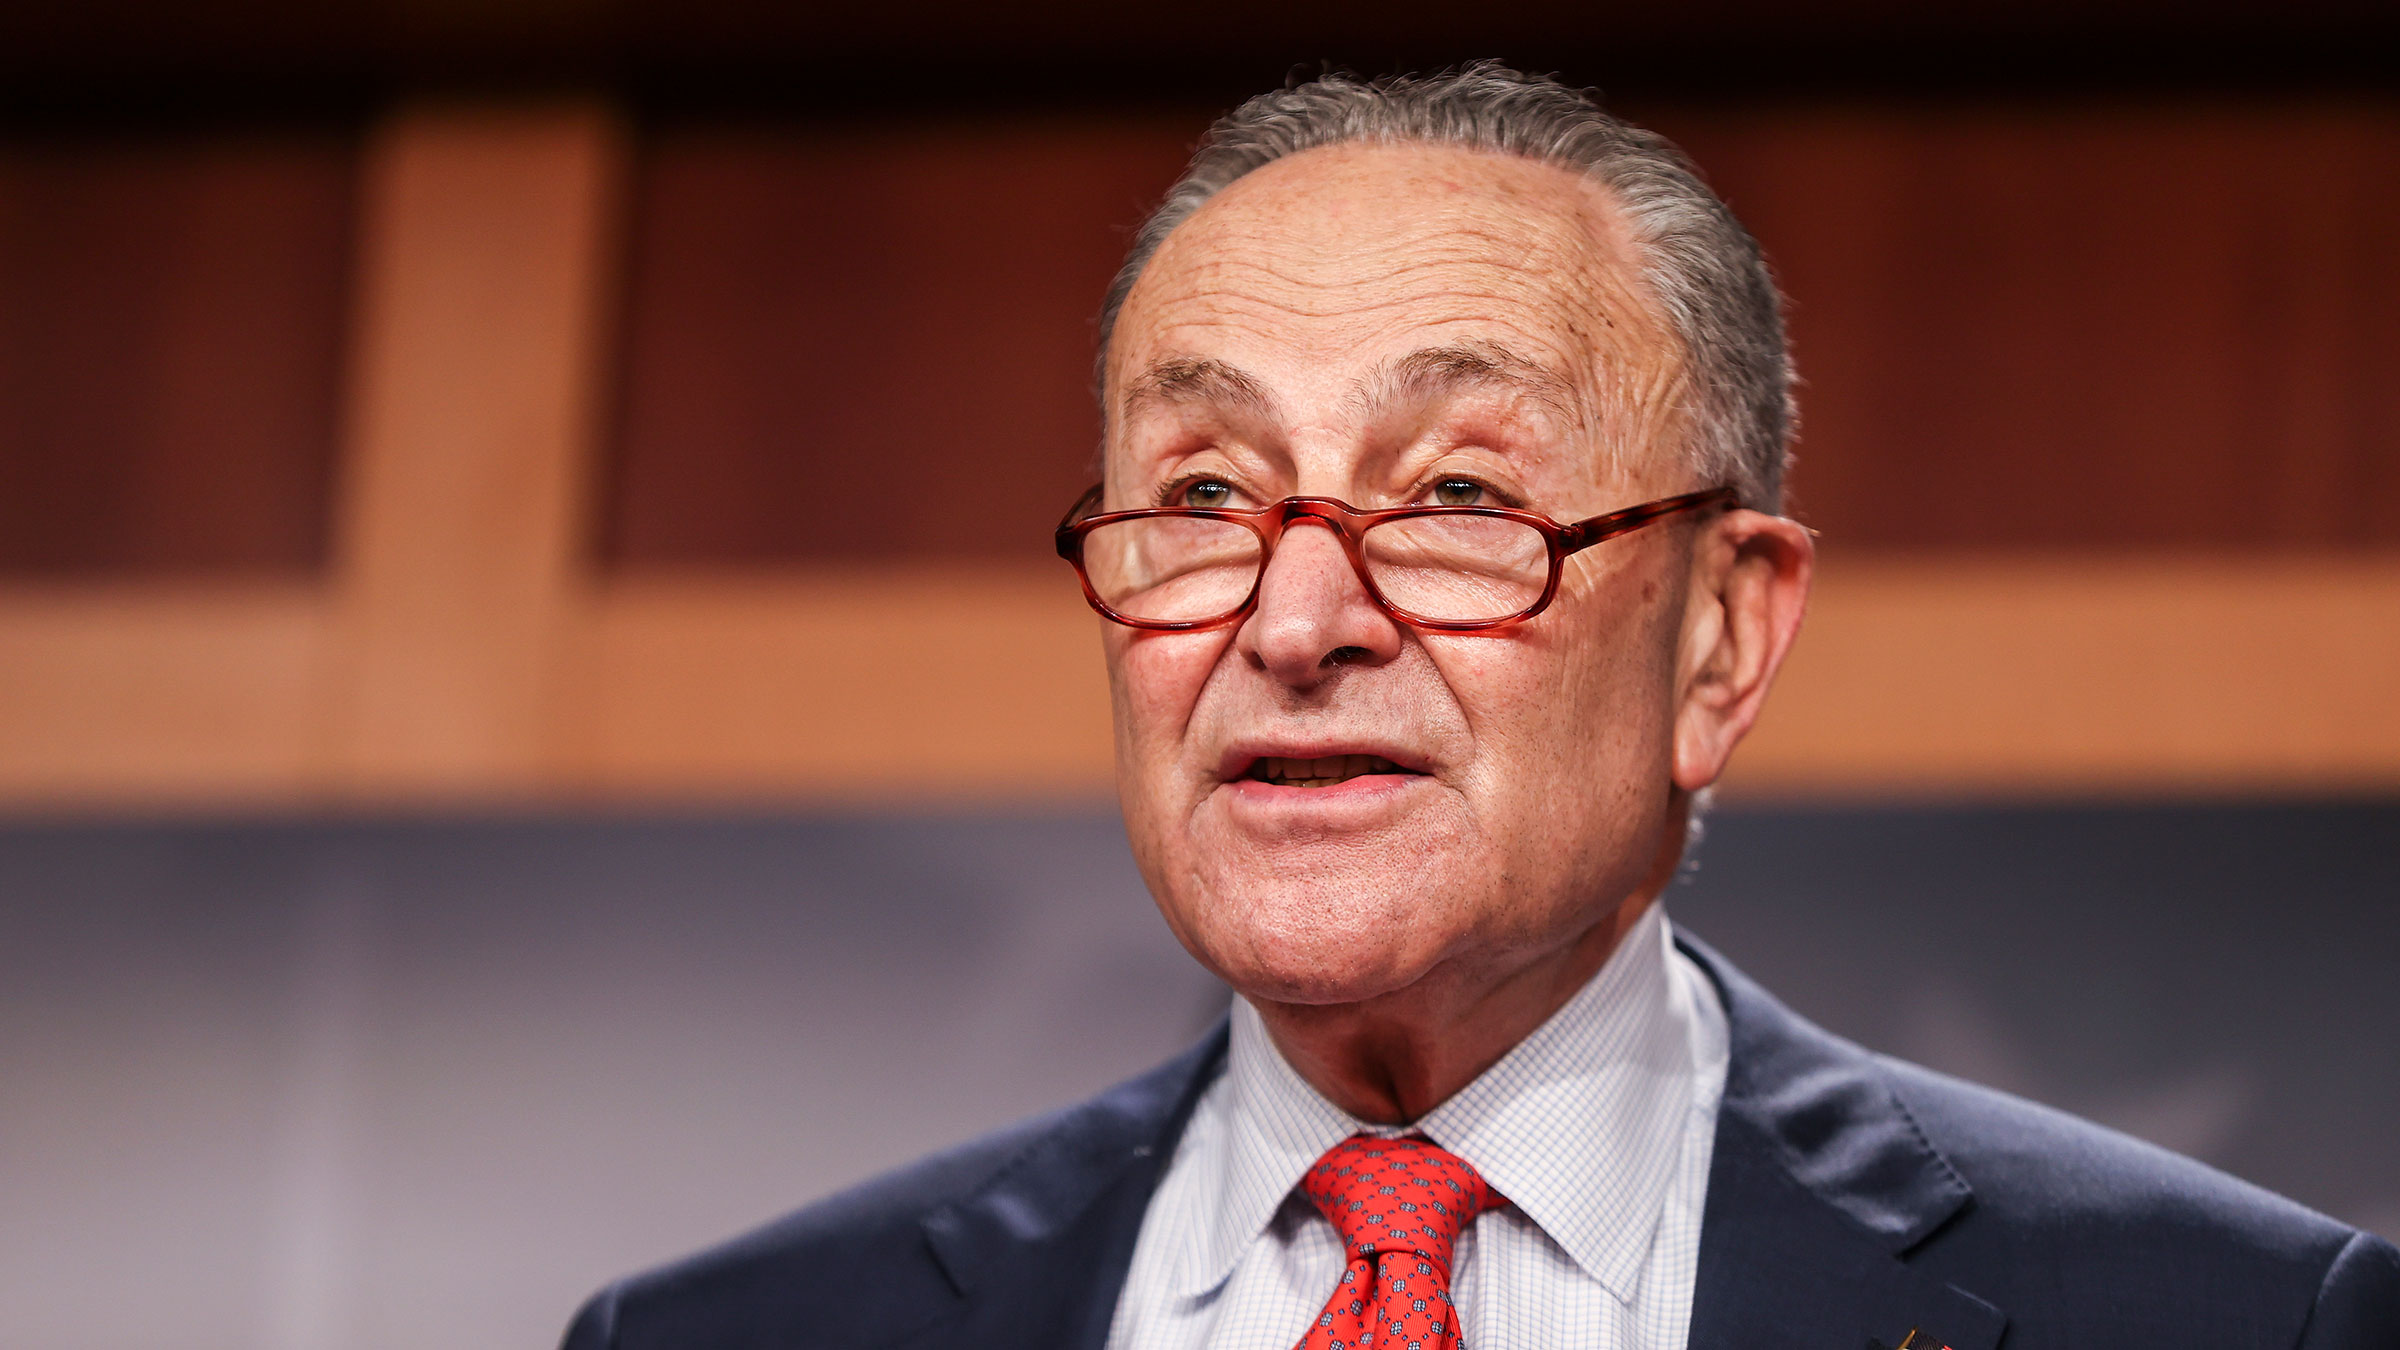 Senate Minority Leader Chuck Schumer speaks at a press conference on Capitol Hill on December 15 in Washington, DC.